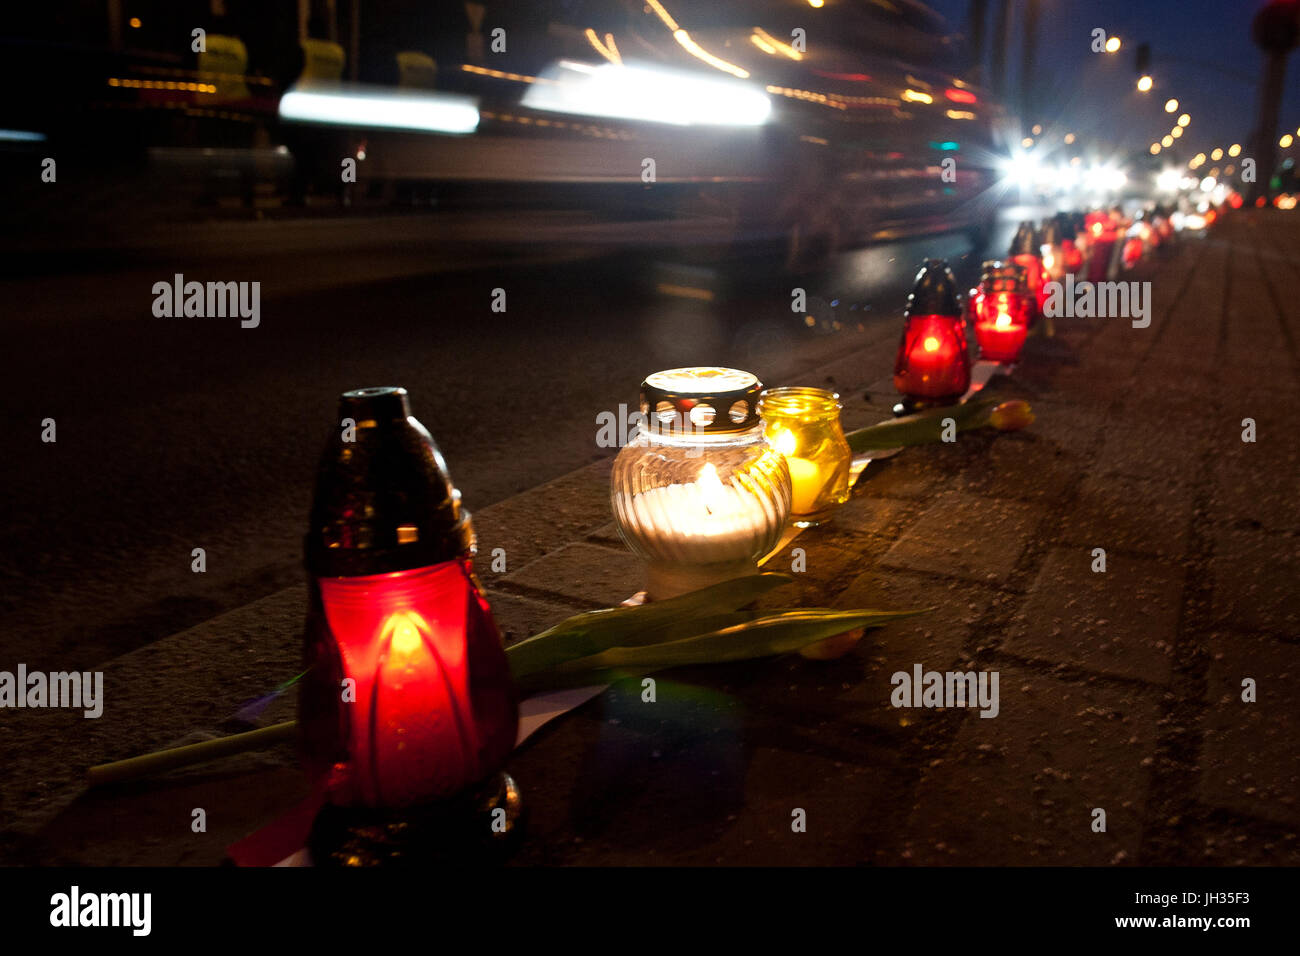 Road traffic accident night candles flowers - Stock Image